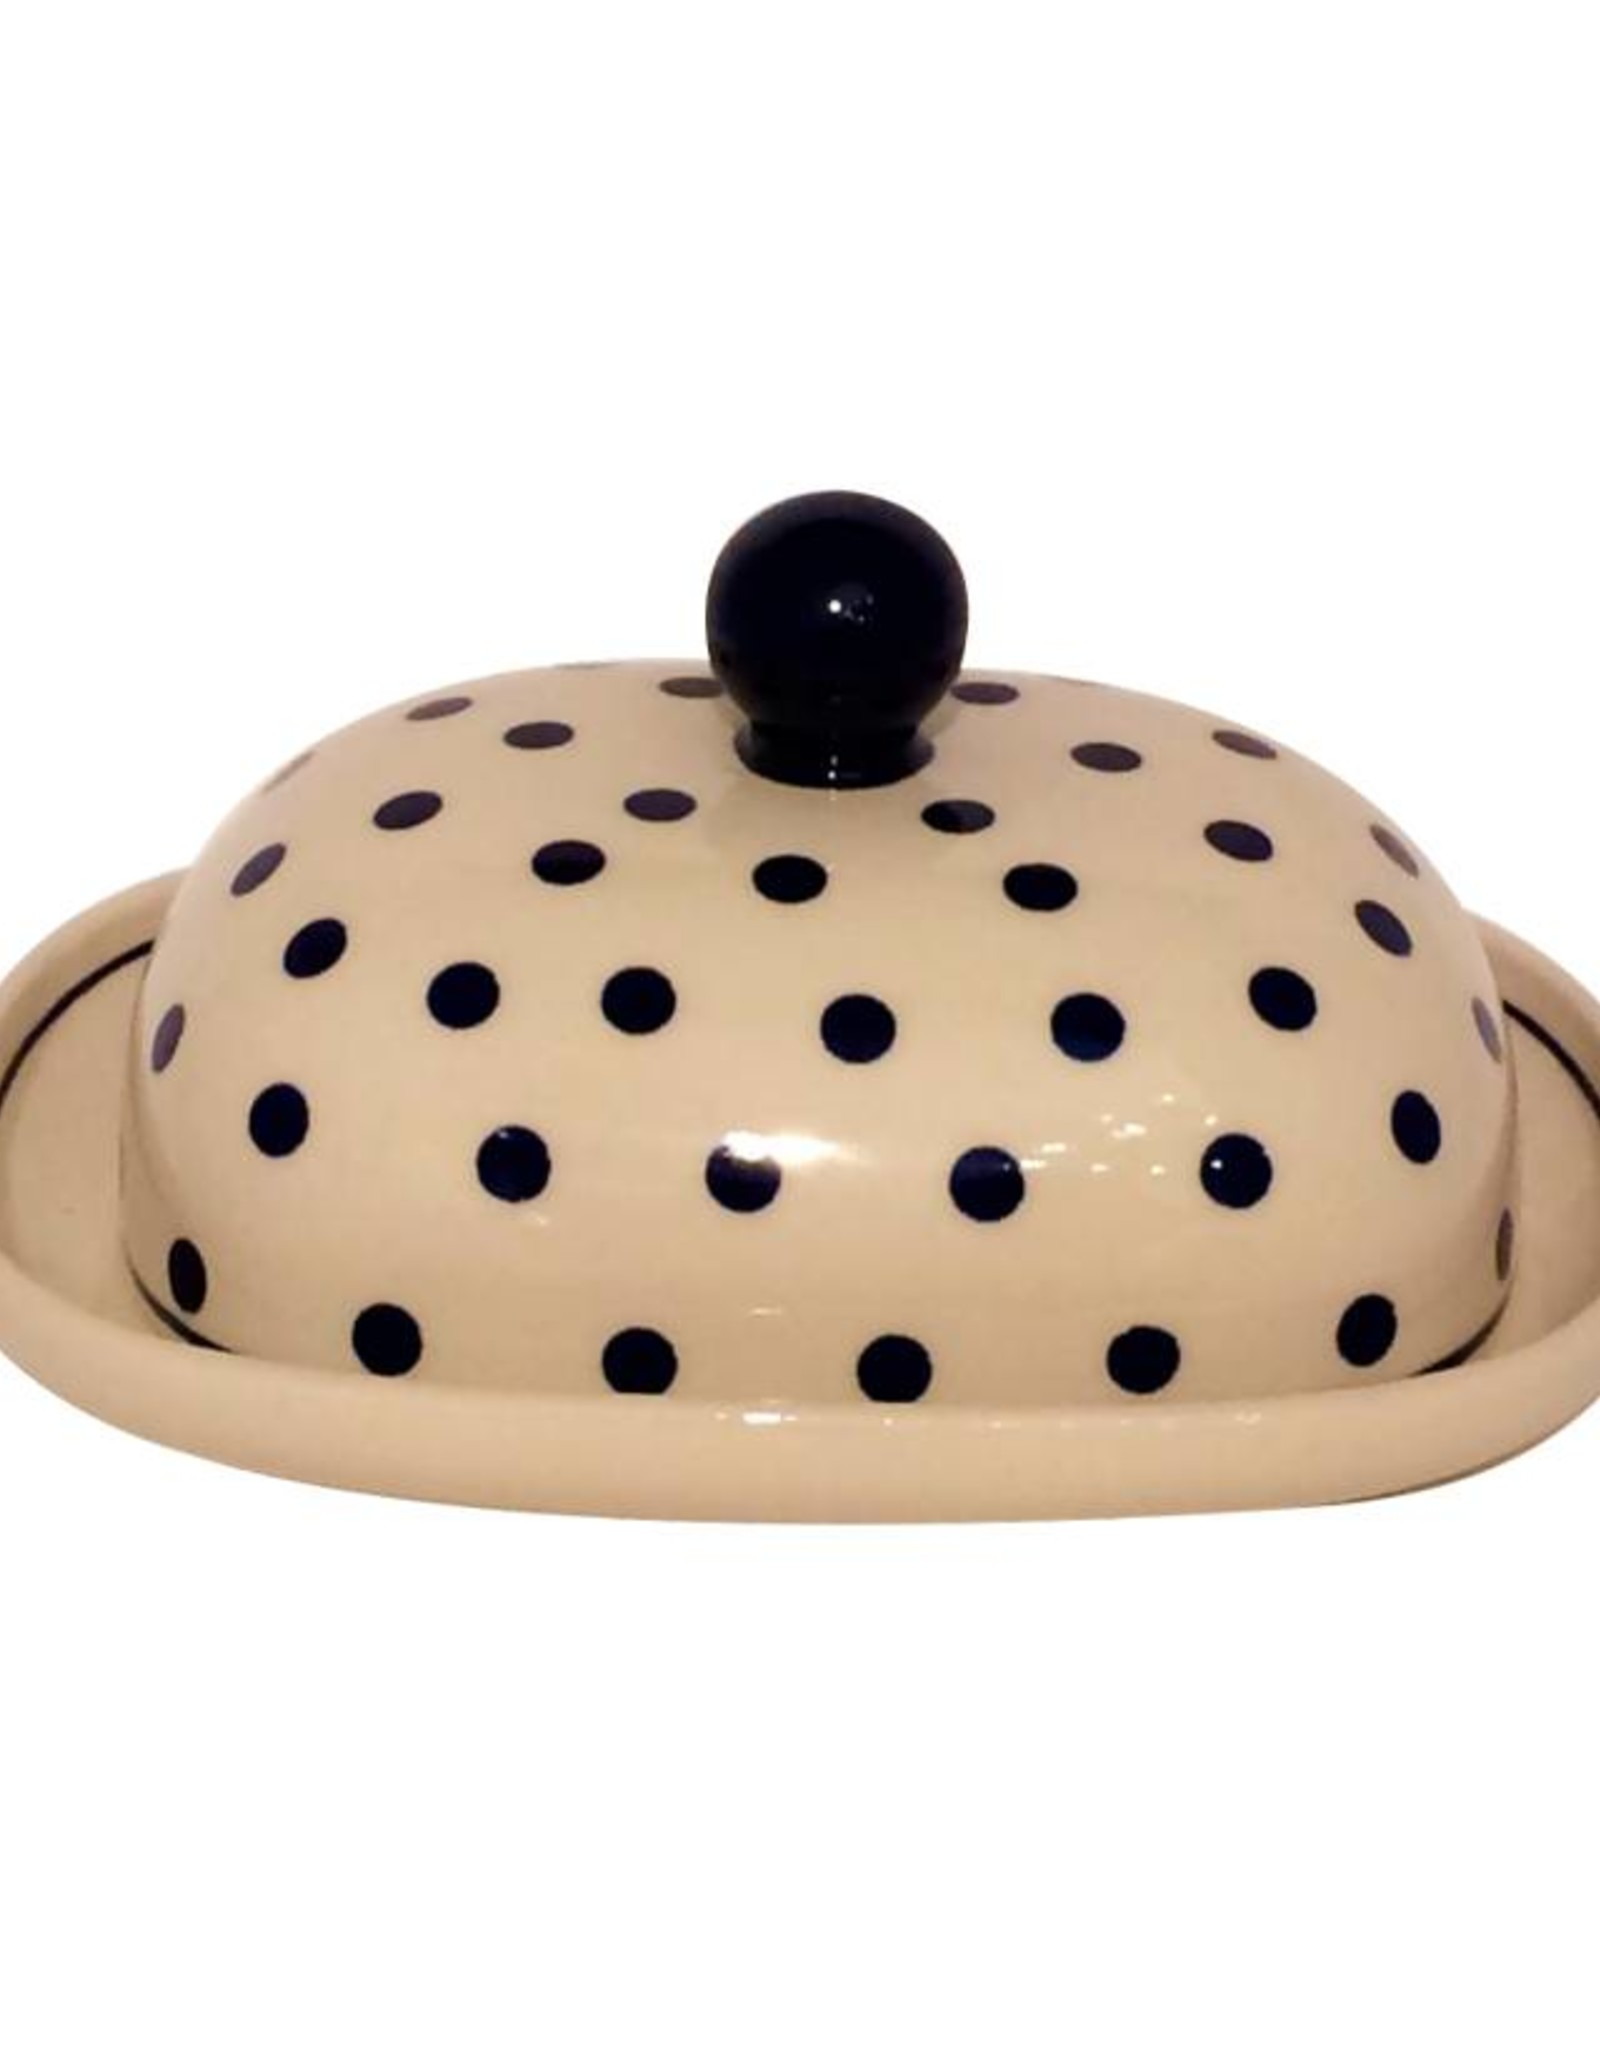 Butter Dish - Blue/White Dots